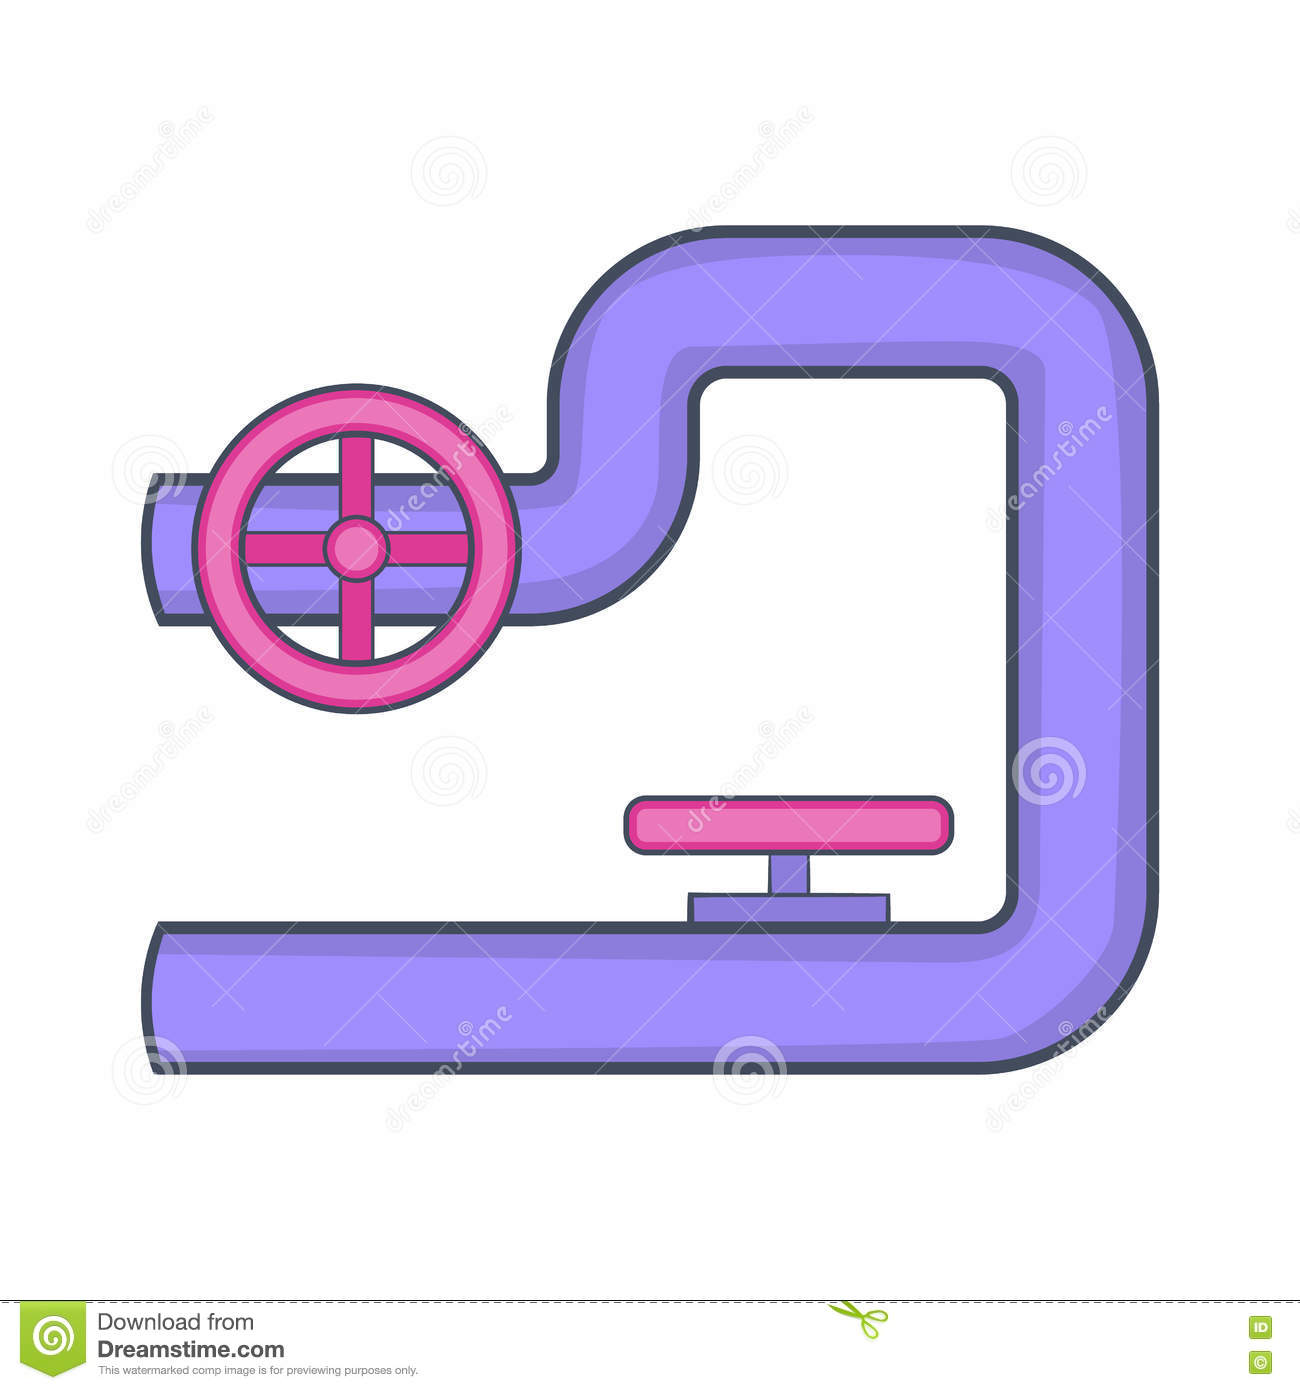 Pipe With Valves Icon Cartoon Style Stock Vector Illustration Of